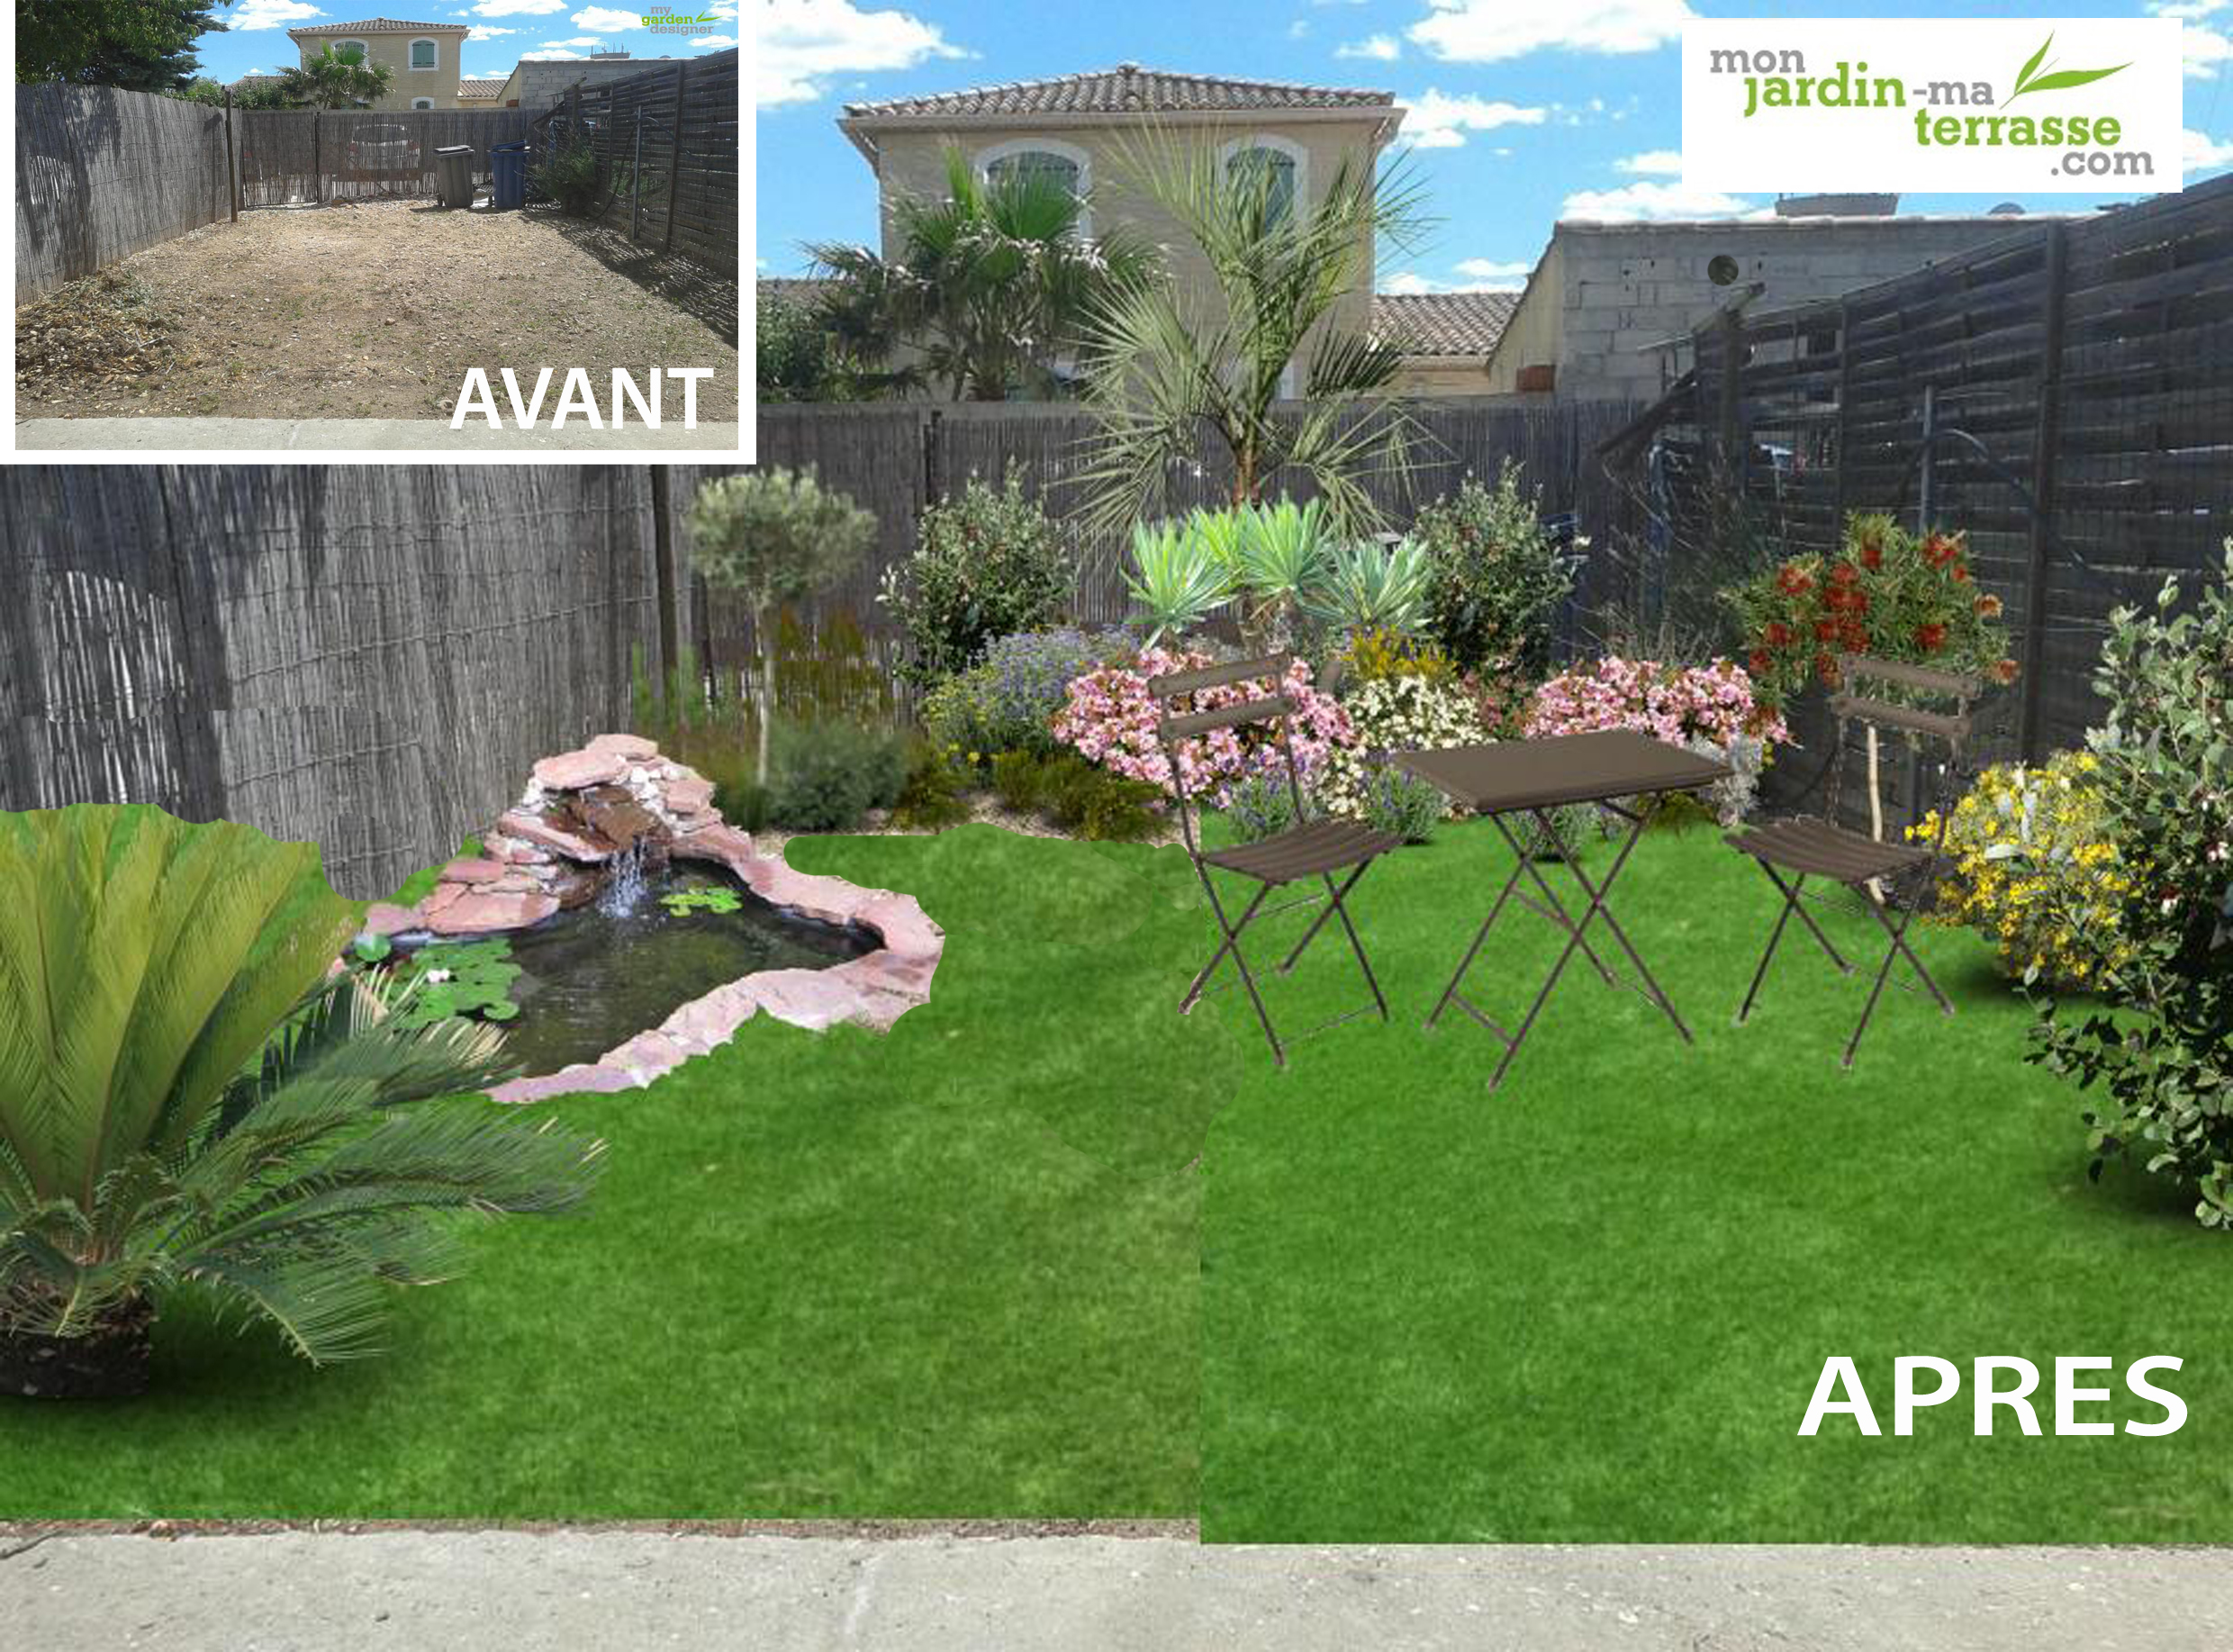 Id e d am nagement d un petit jardin monjardin for Jardin idee amenagement